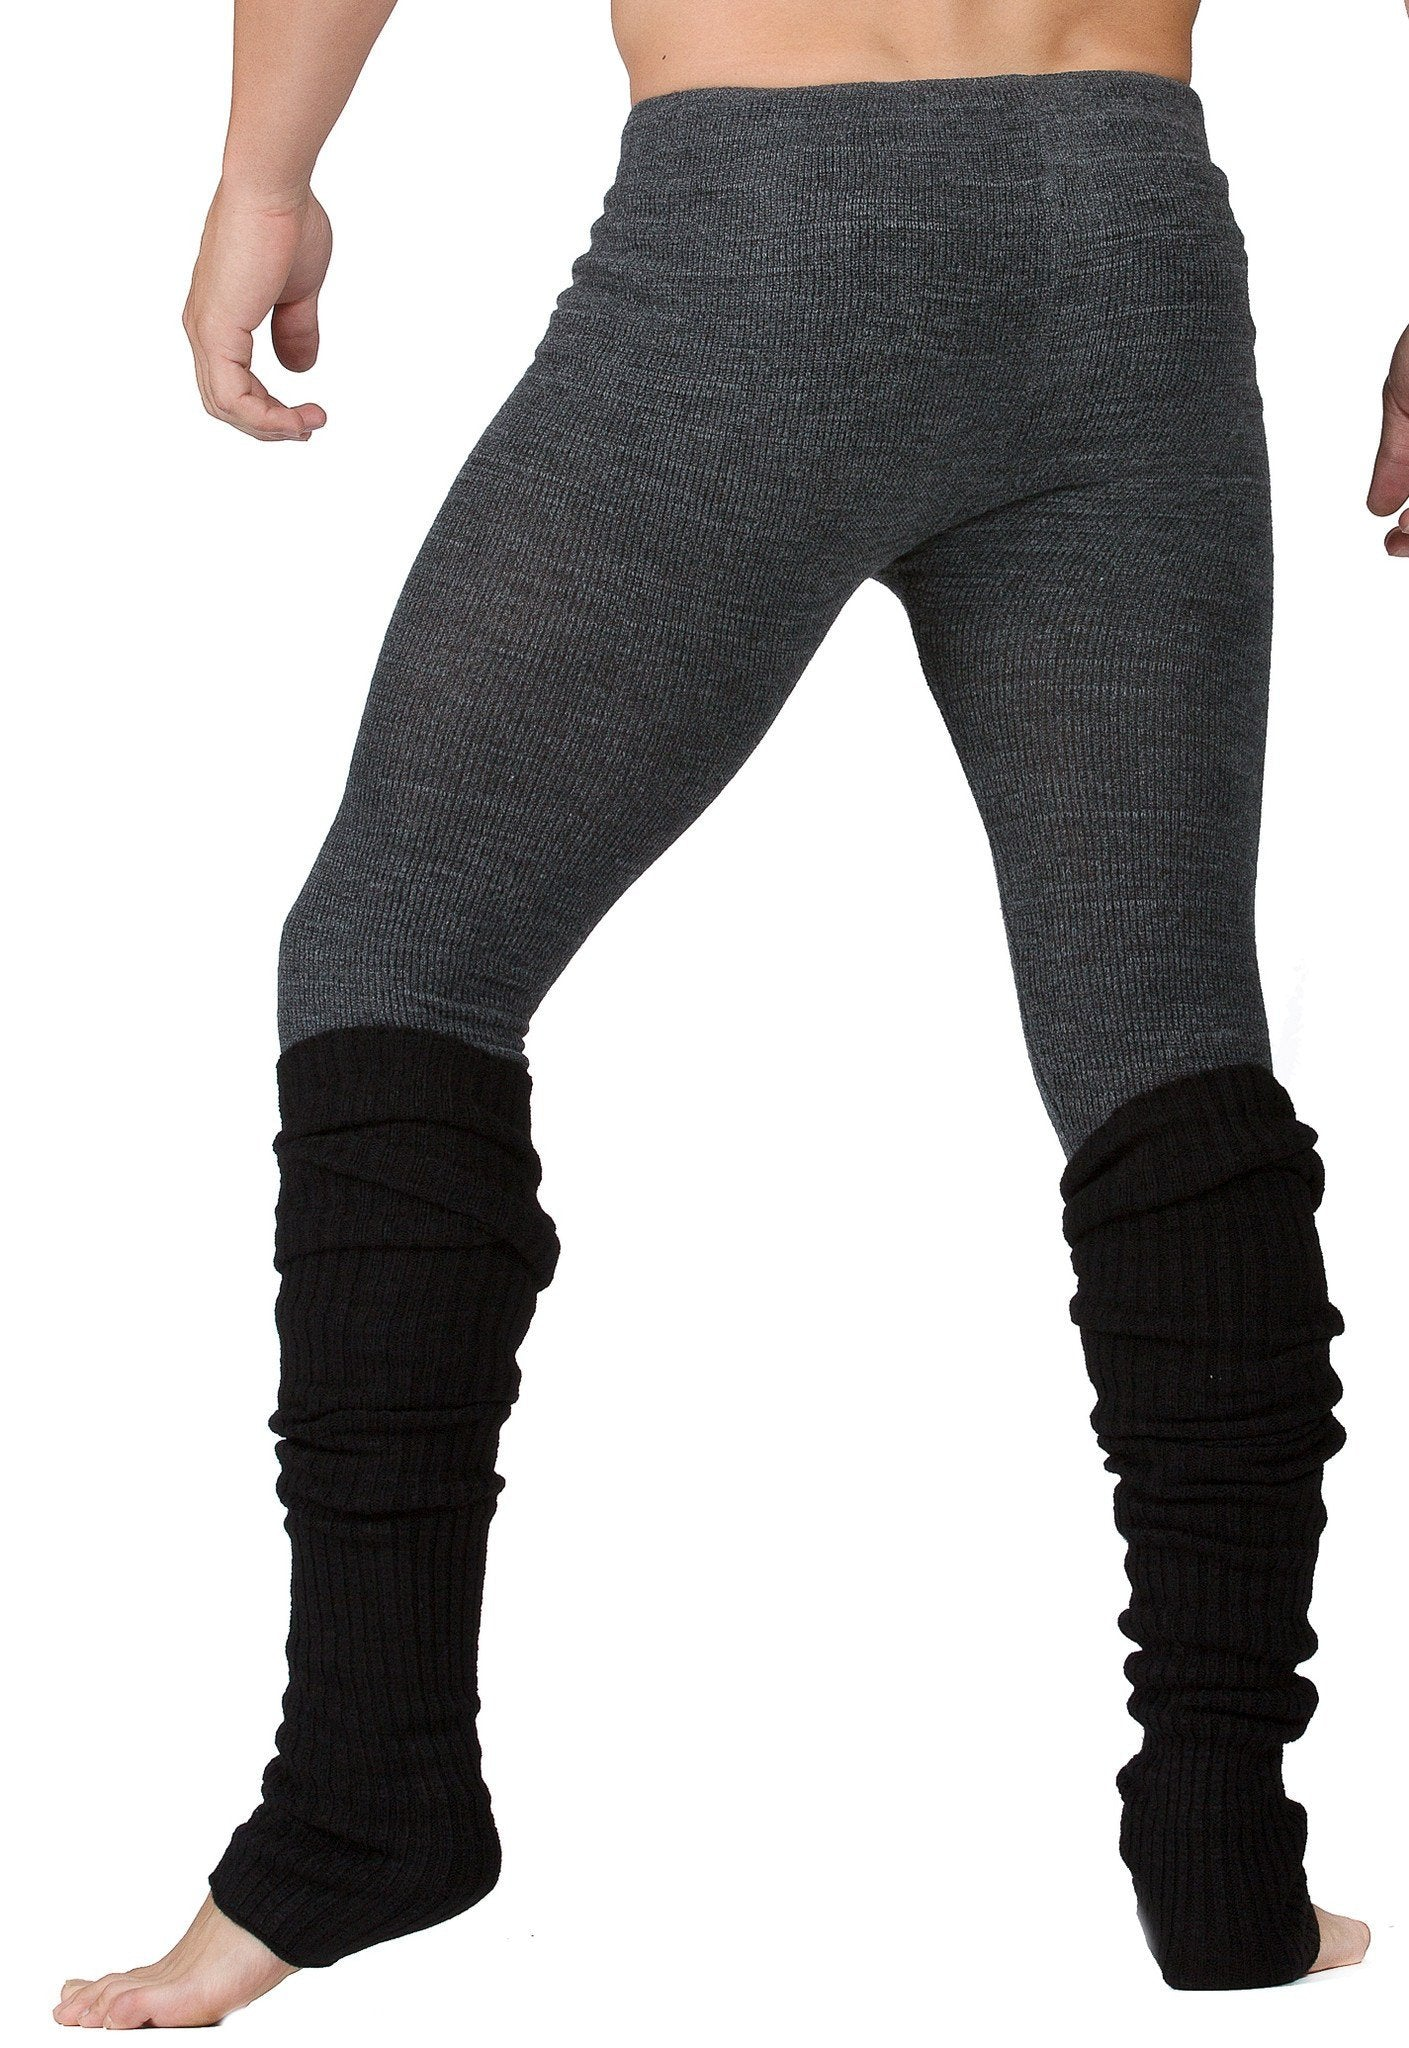 Leg Warmers / Dark Gray / Men's Dancewear @KDdanceNewYork #MadeInUSA - 3